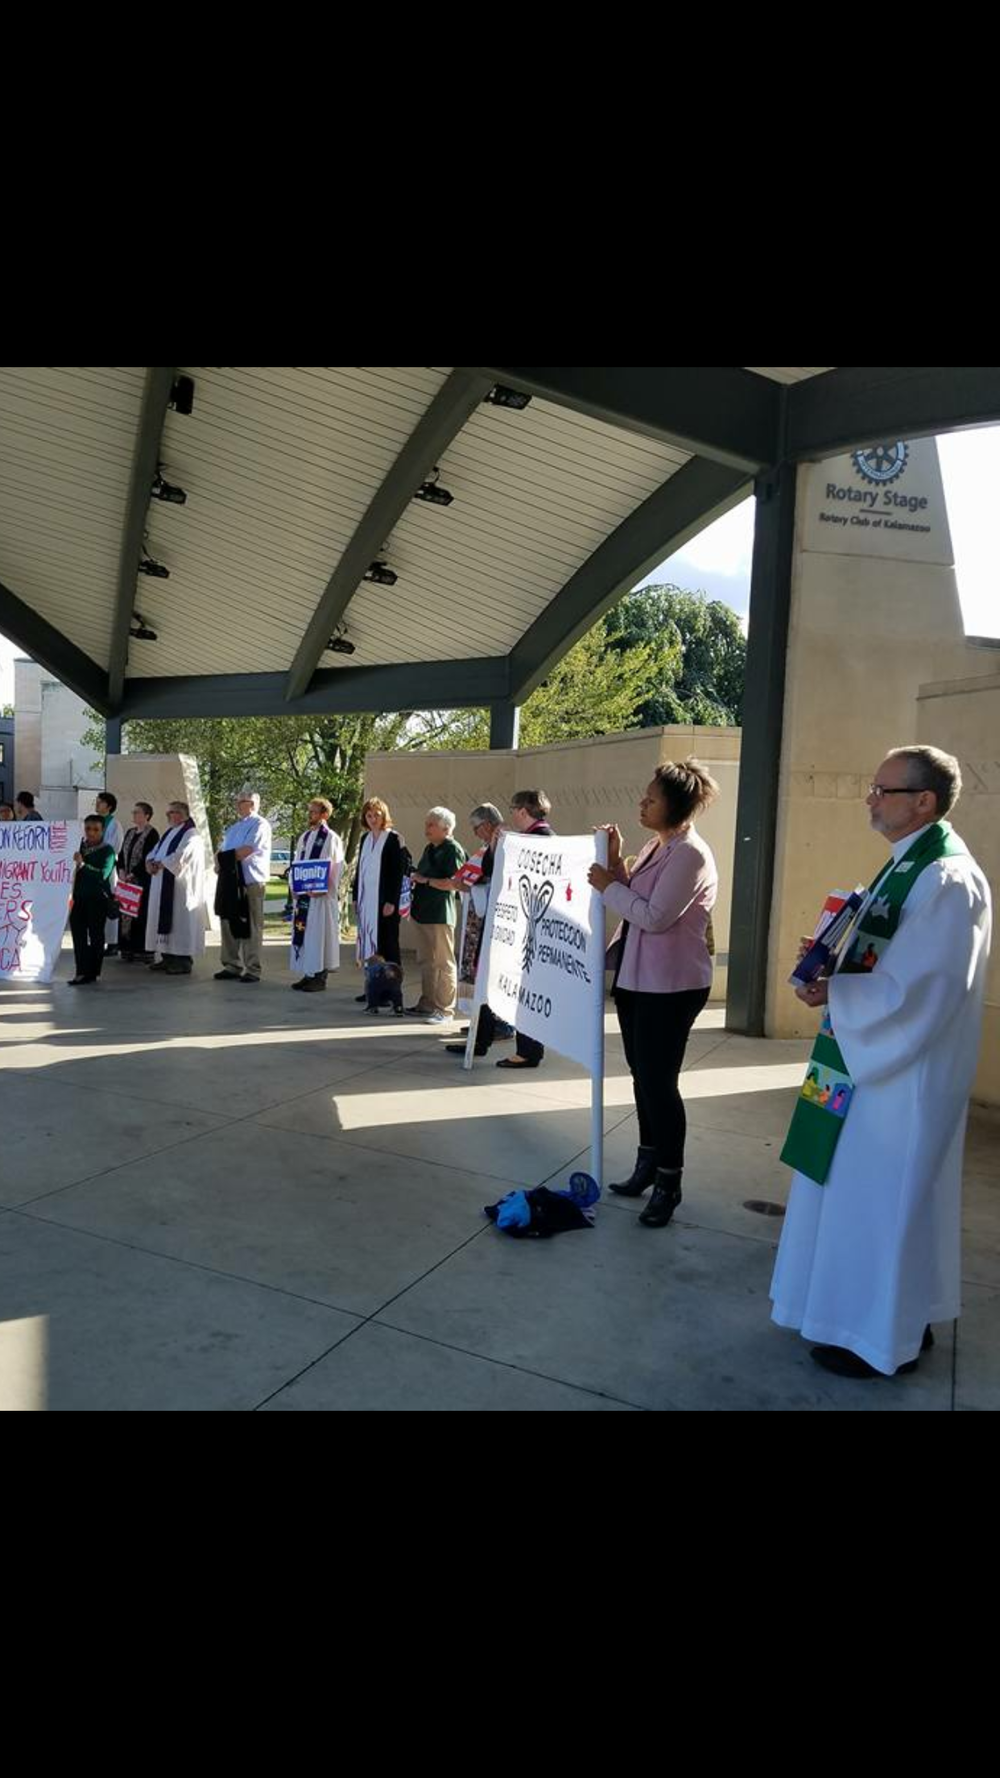 Picture including me; 9-6-17 Kalamazoo with other clergy in protest in support of DACA